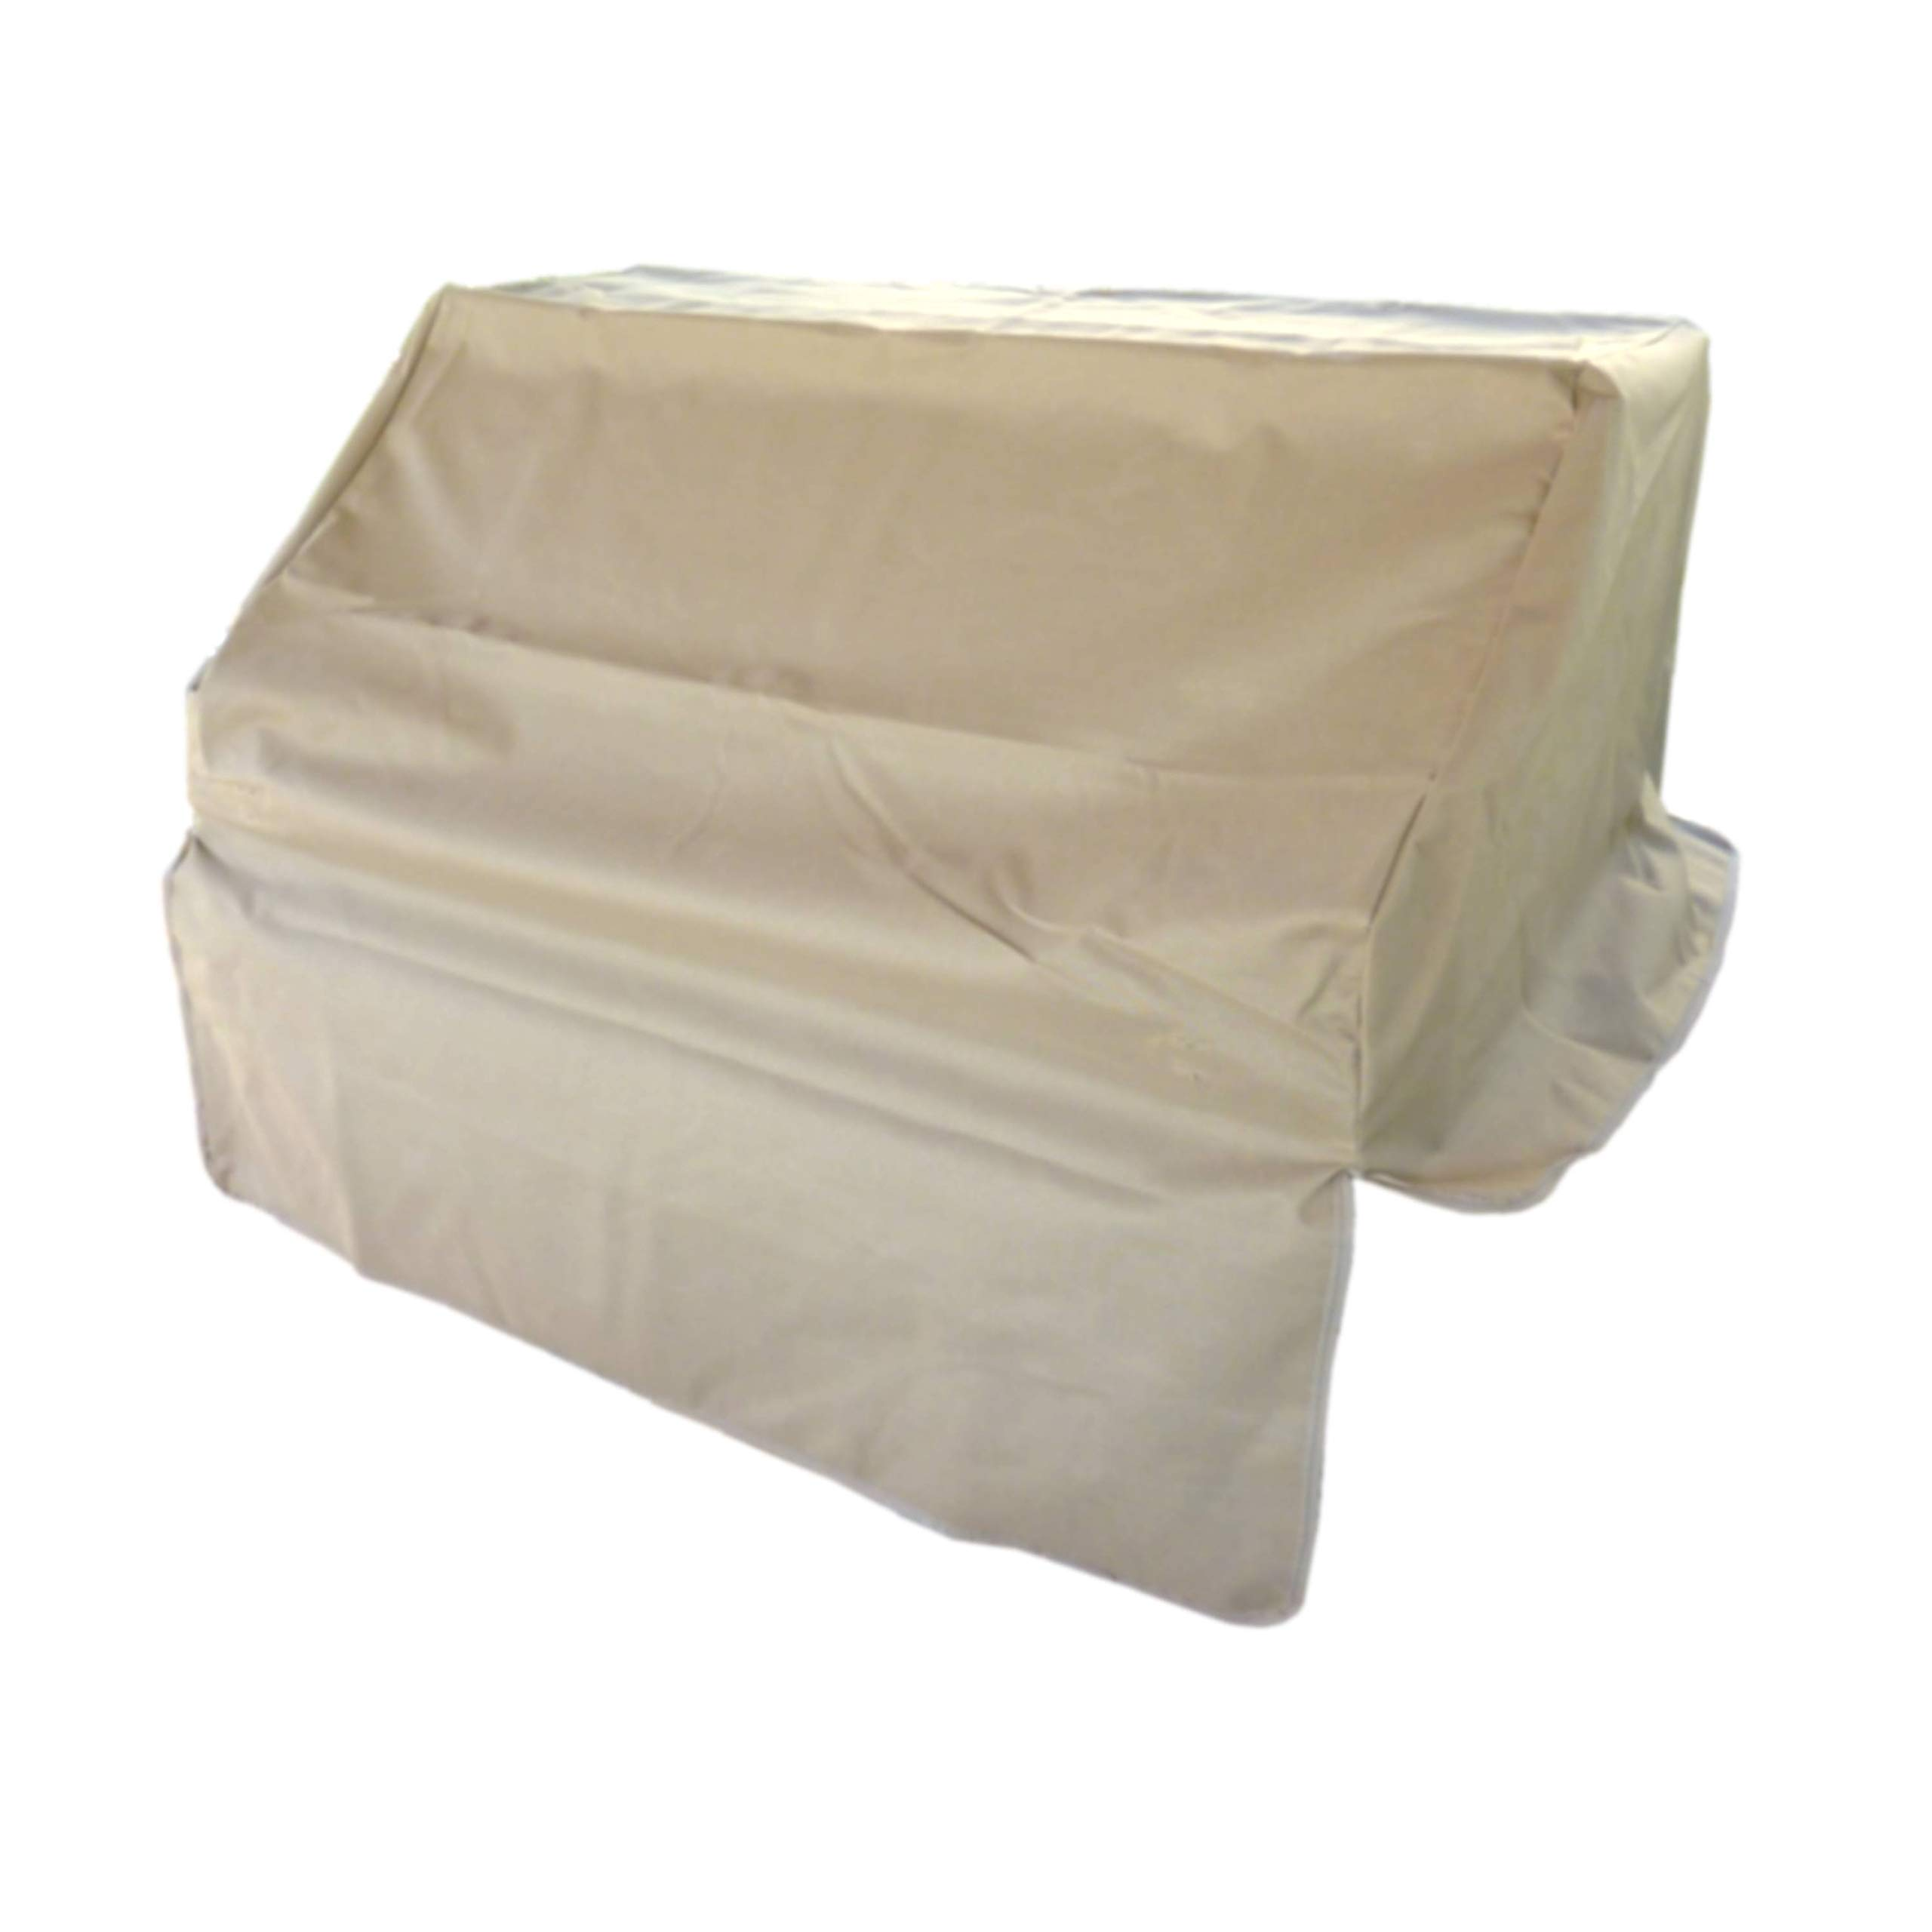 Formosa Covers BBQ Built-in Grill Cover up to 36'' by Formosa Covers